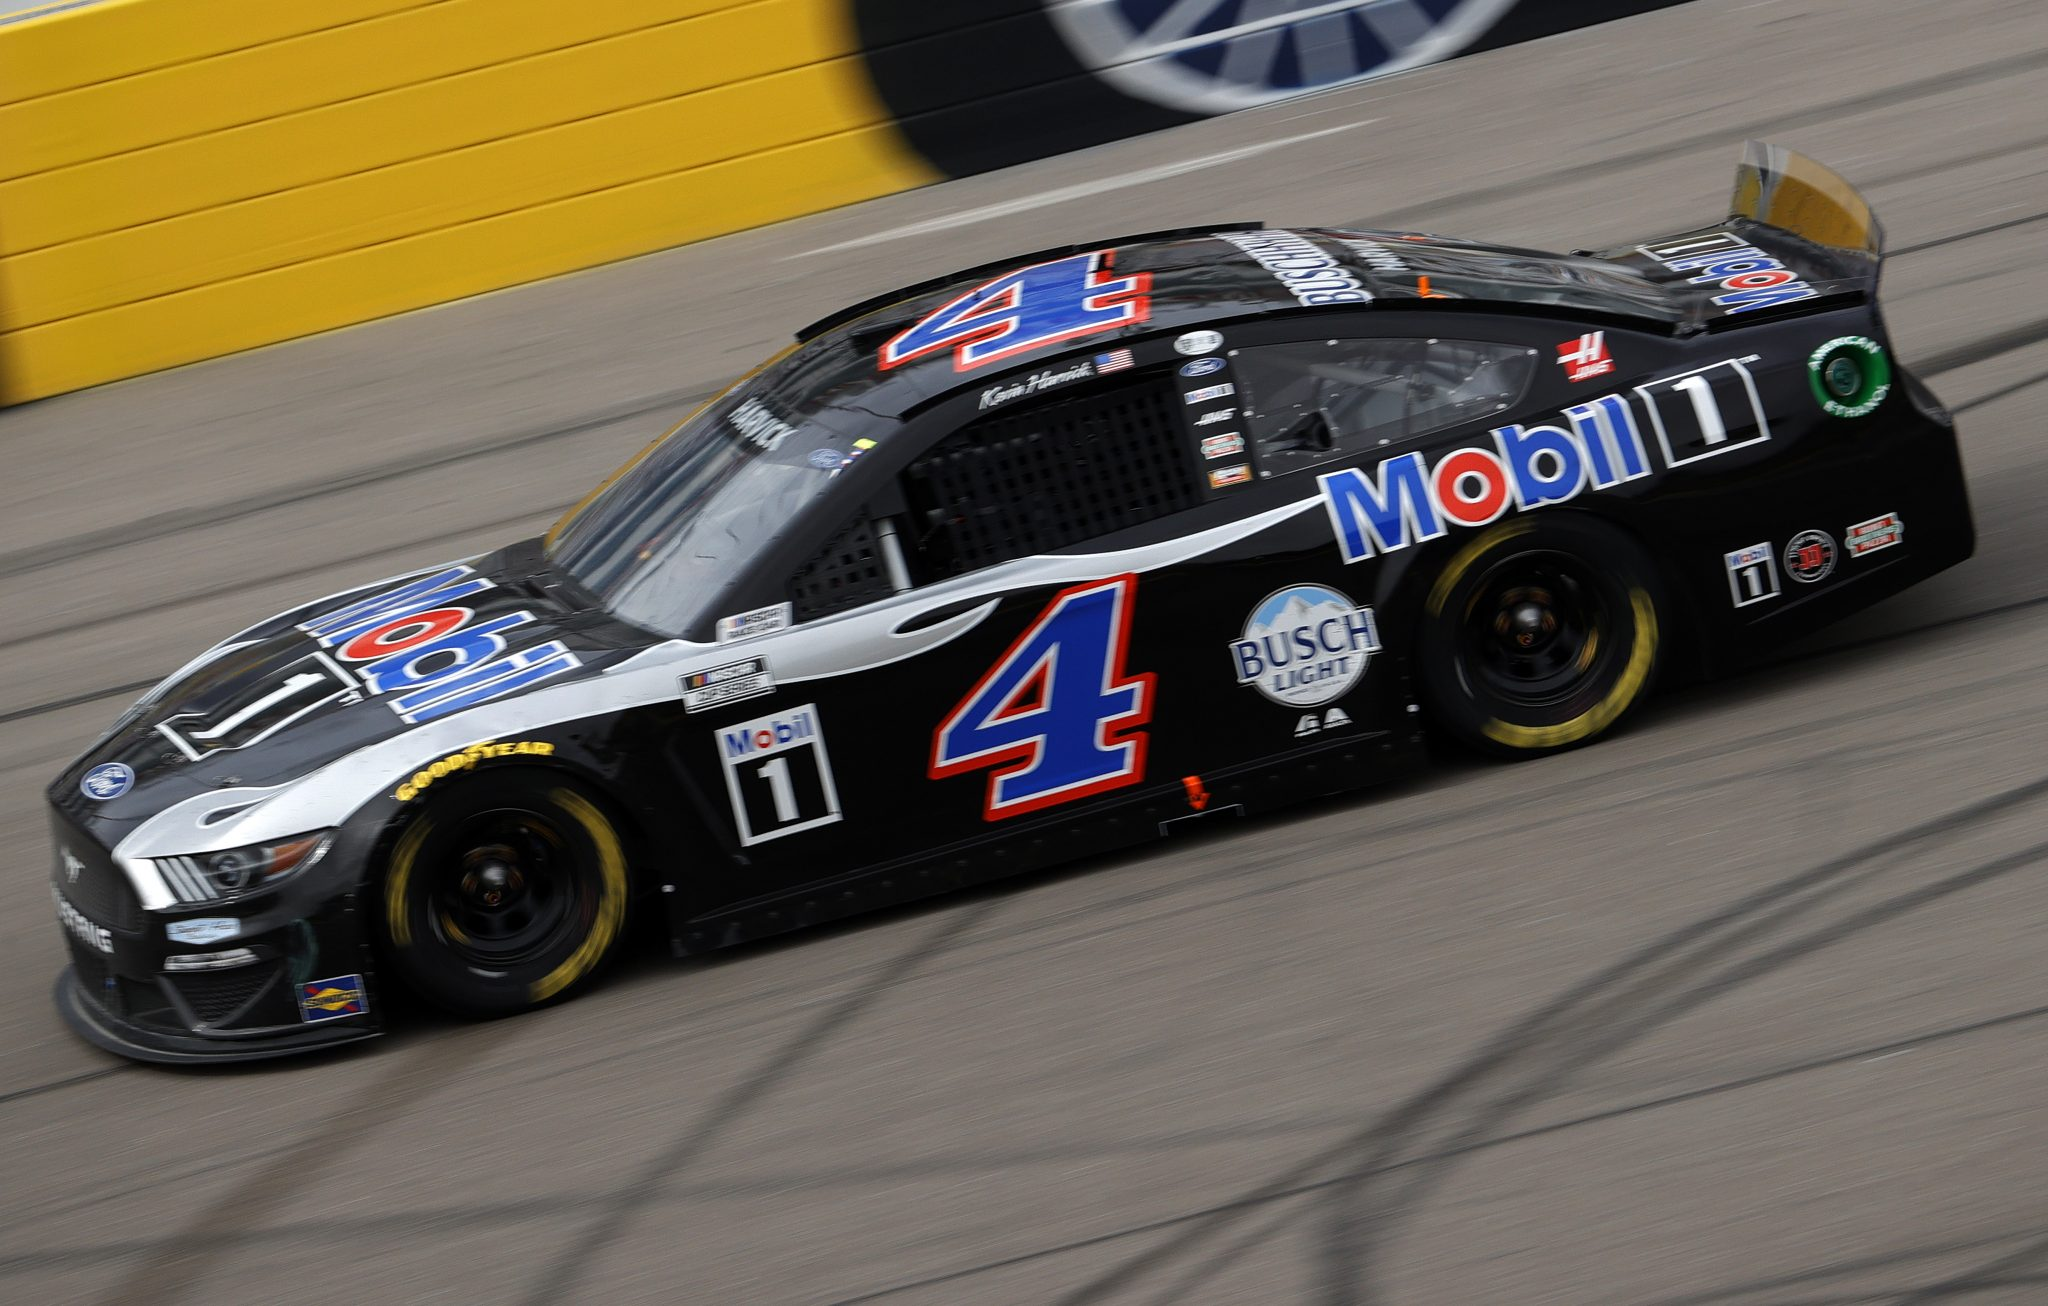 LAS VEGAS, NEVADA - MARCH 07: Kevin Harvick, driver of the #4 Mobil 1 Ford, drives during the NASCAR Cup Series Pennzoil 400 presented by Jiffy Lube at the Las Vegas Motor Speedway on March 07, 2021 in Las Vegas, Nevada. (Photo by Chris Graythen/Getty Images) | Getty Images